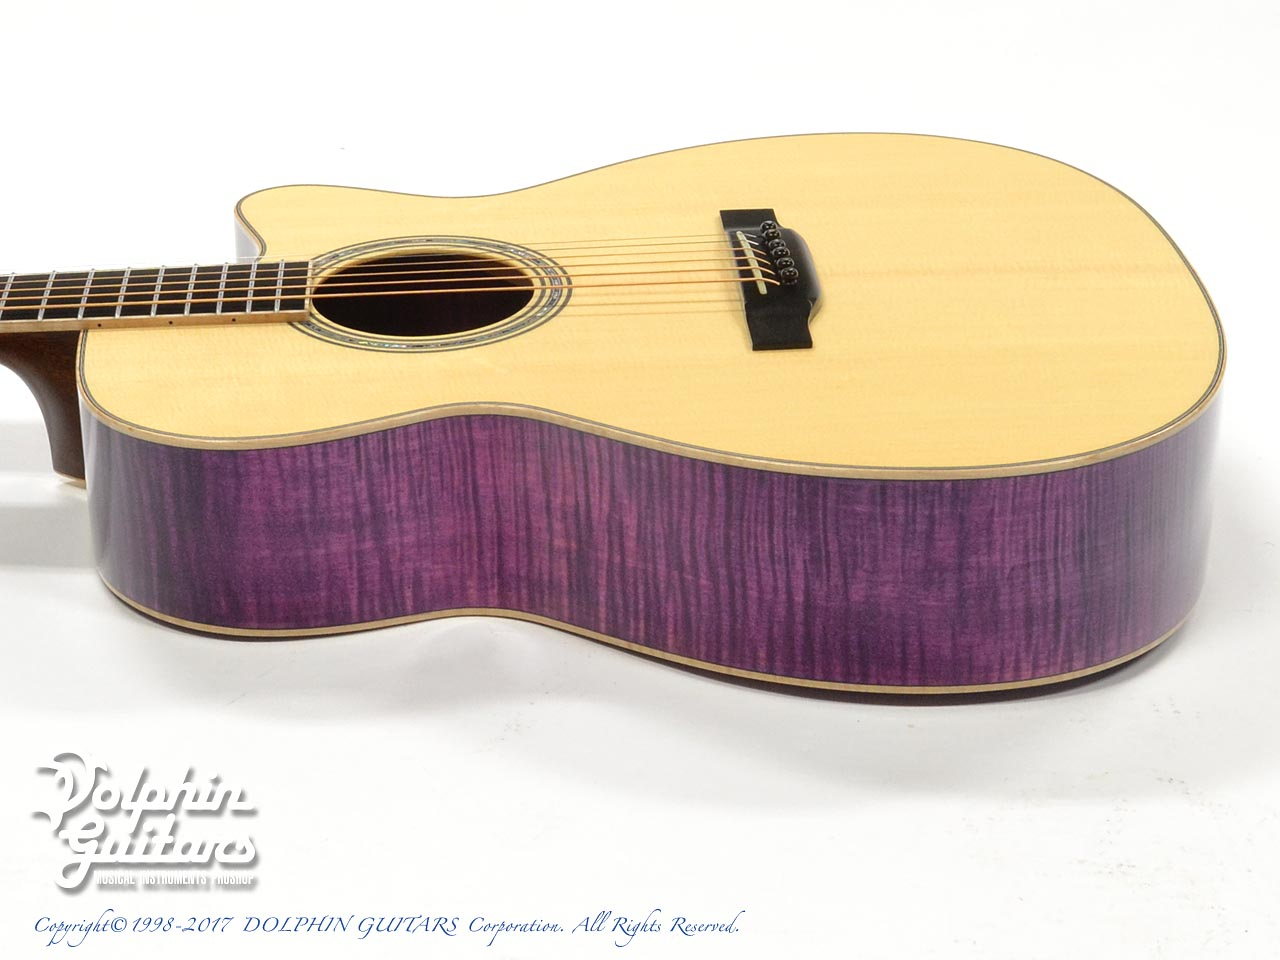 SWITCH: SCOM-3C E-FM (Engelmann Spruce & Flame Maple) (Murasakishikibu) (3)